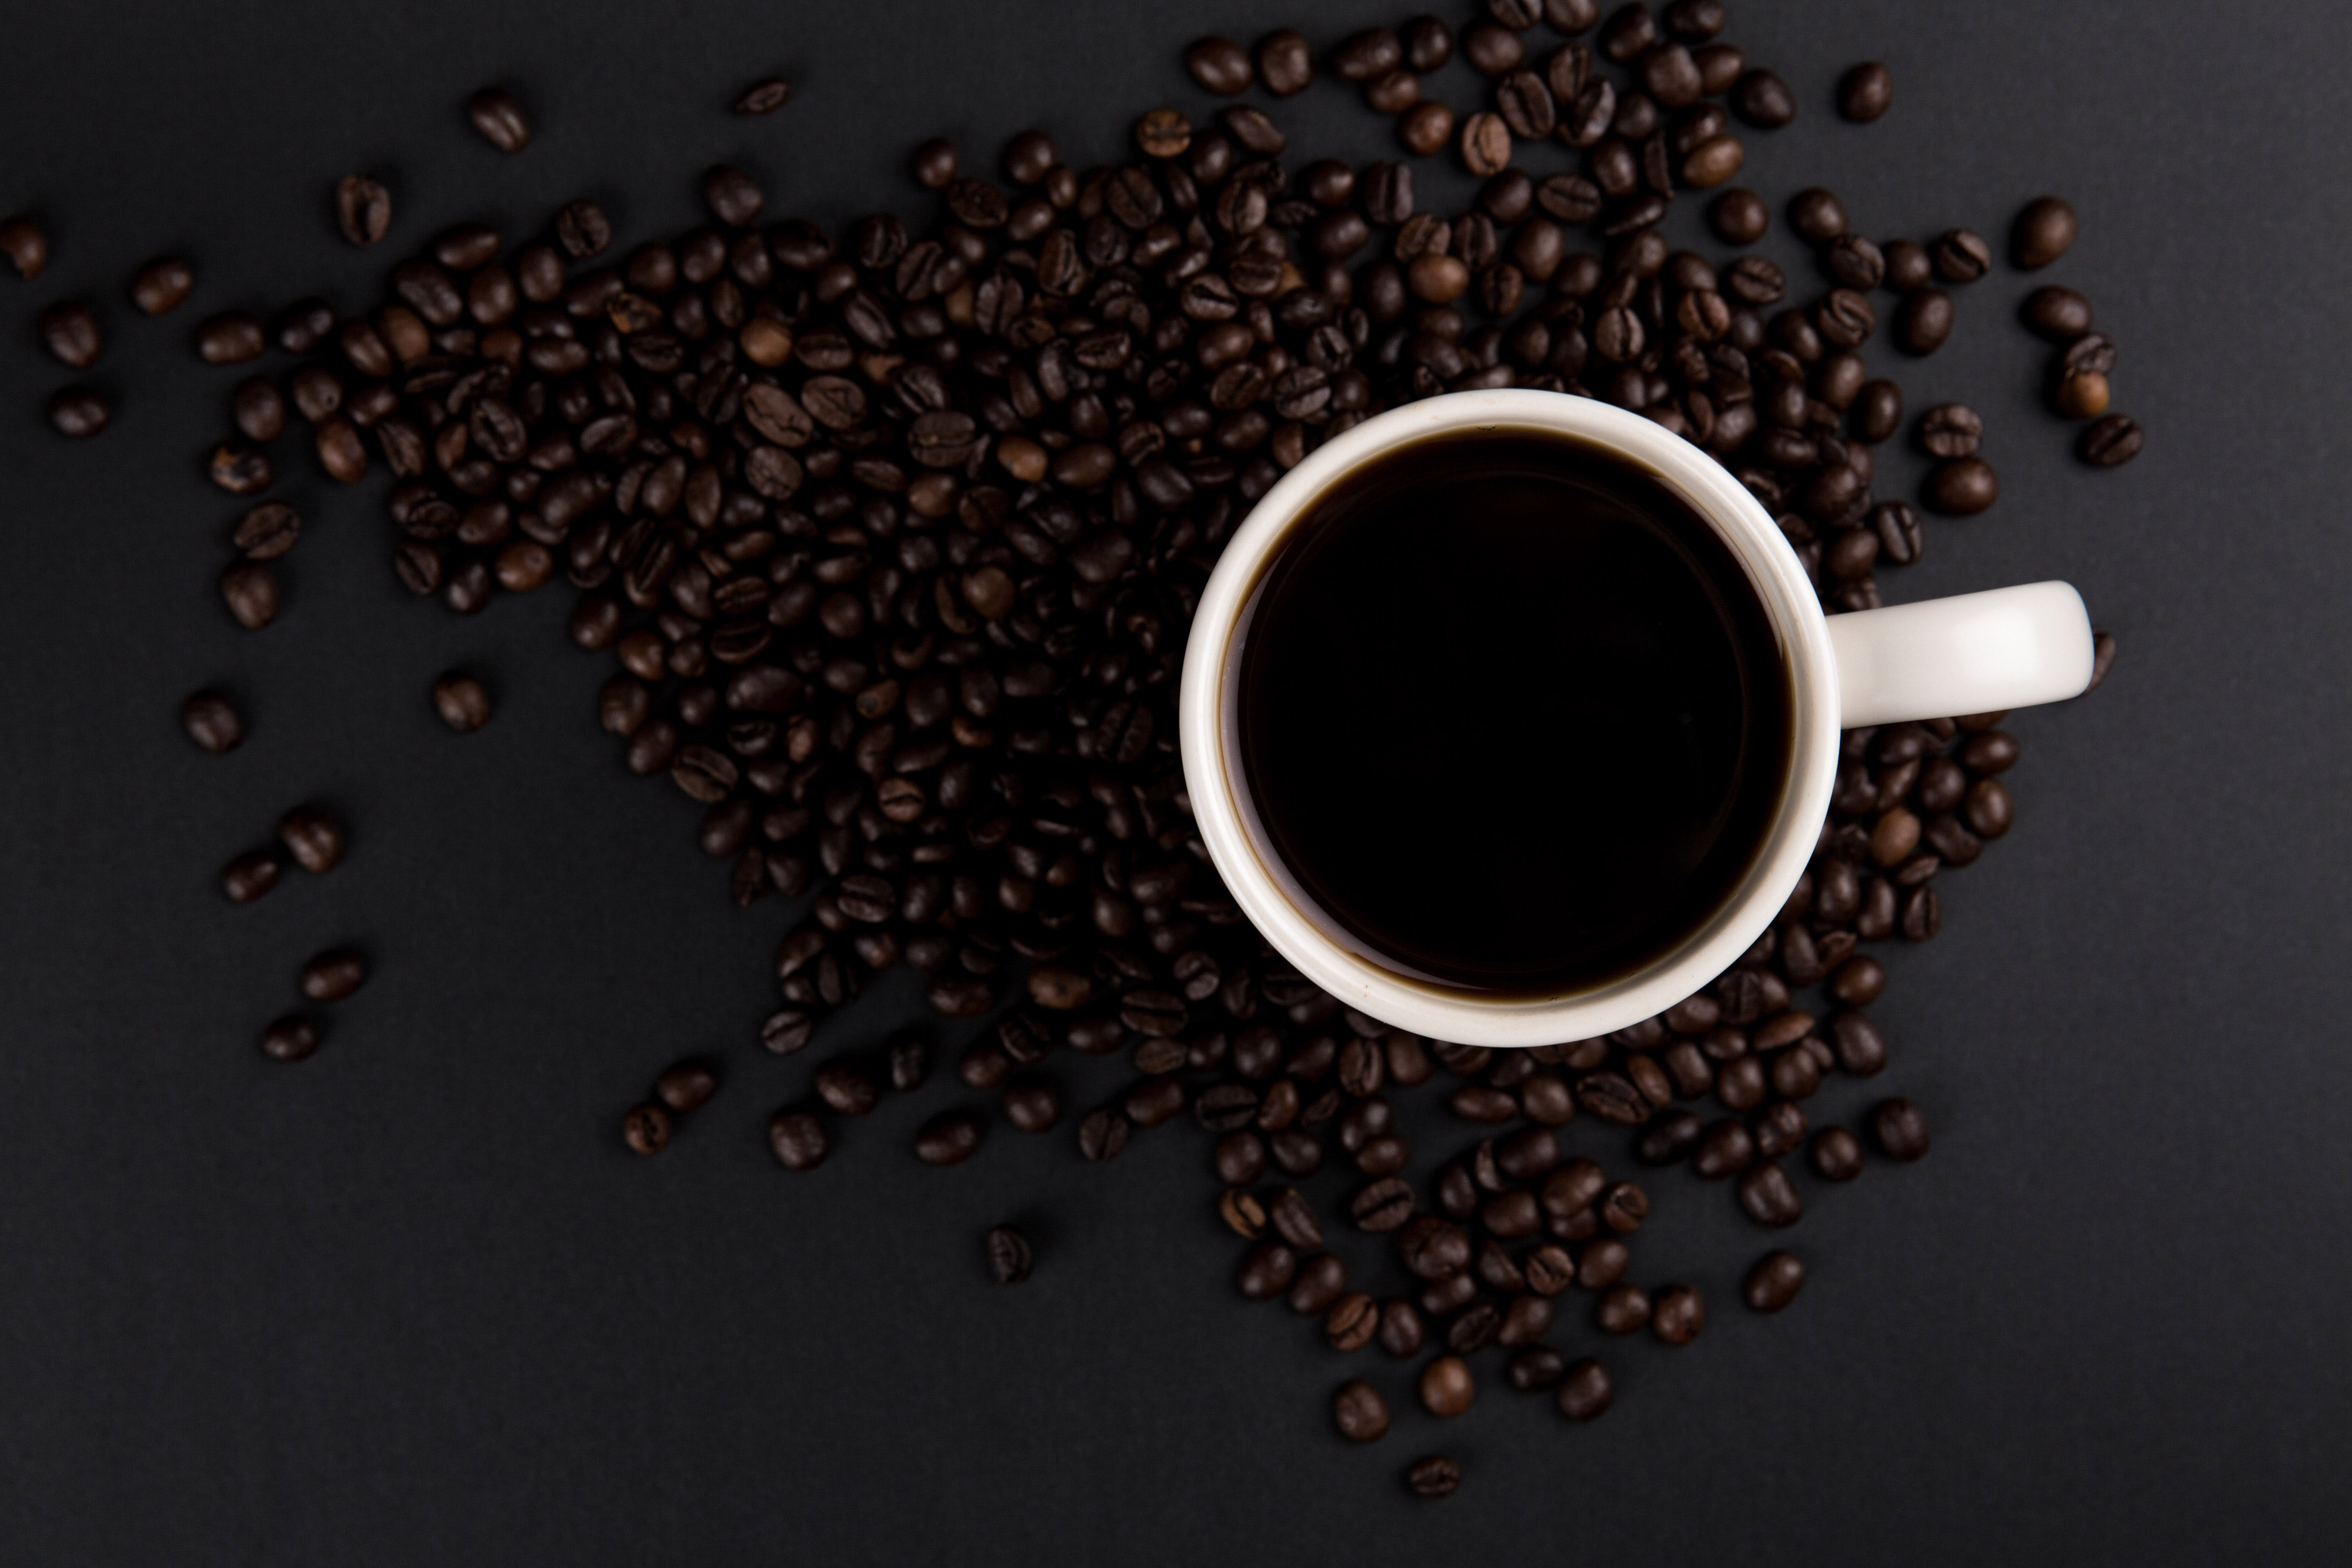 Flat Lay Photography of Cup of Coffee Surrounded by Coffee Beans